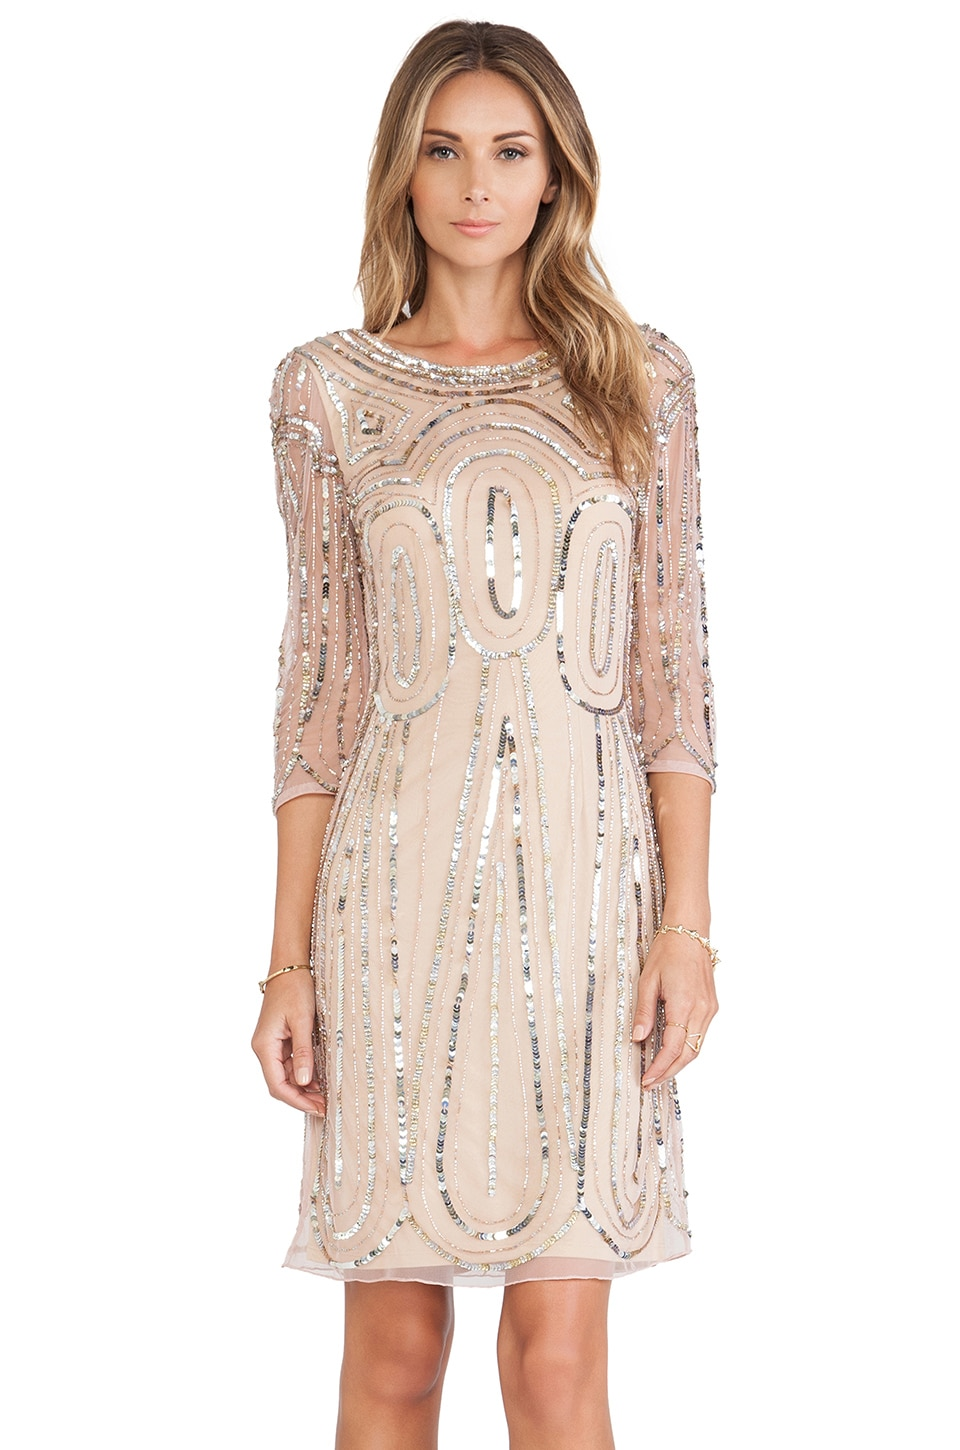 Raga Long Sleeve Sequin Dress in Gold | REVOLVE